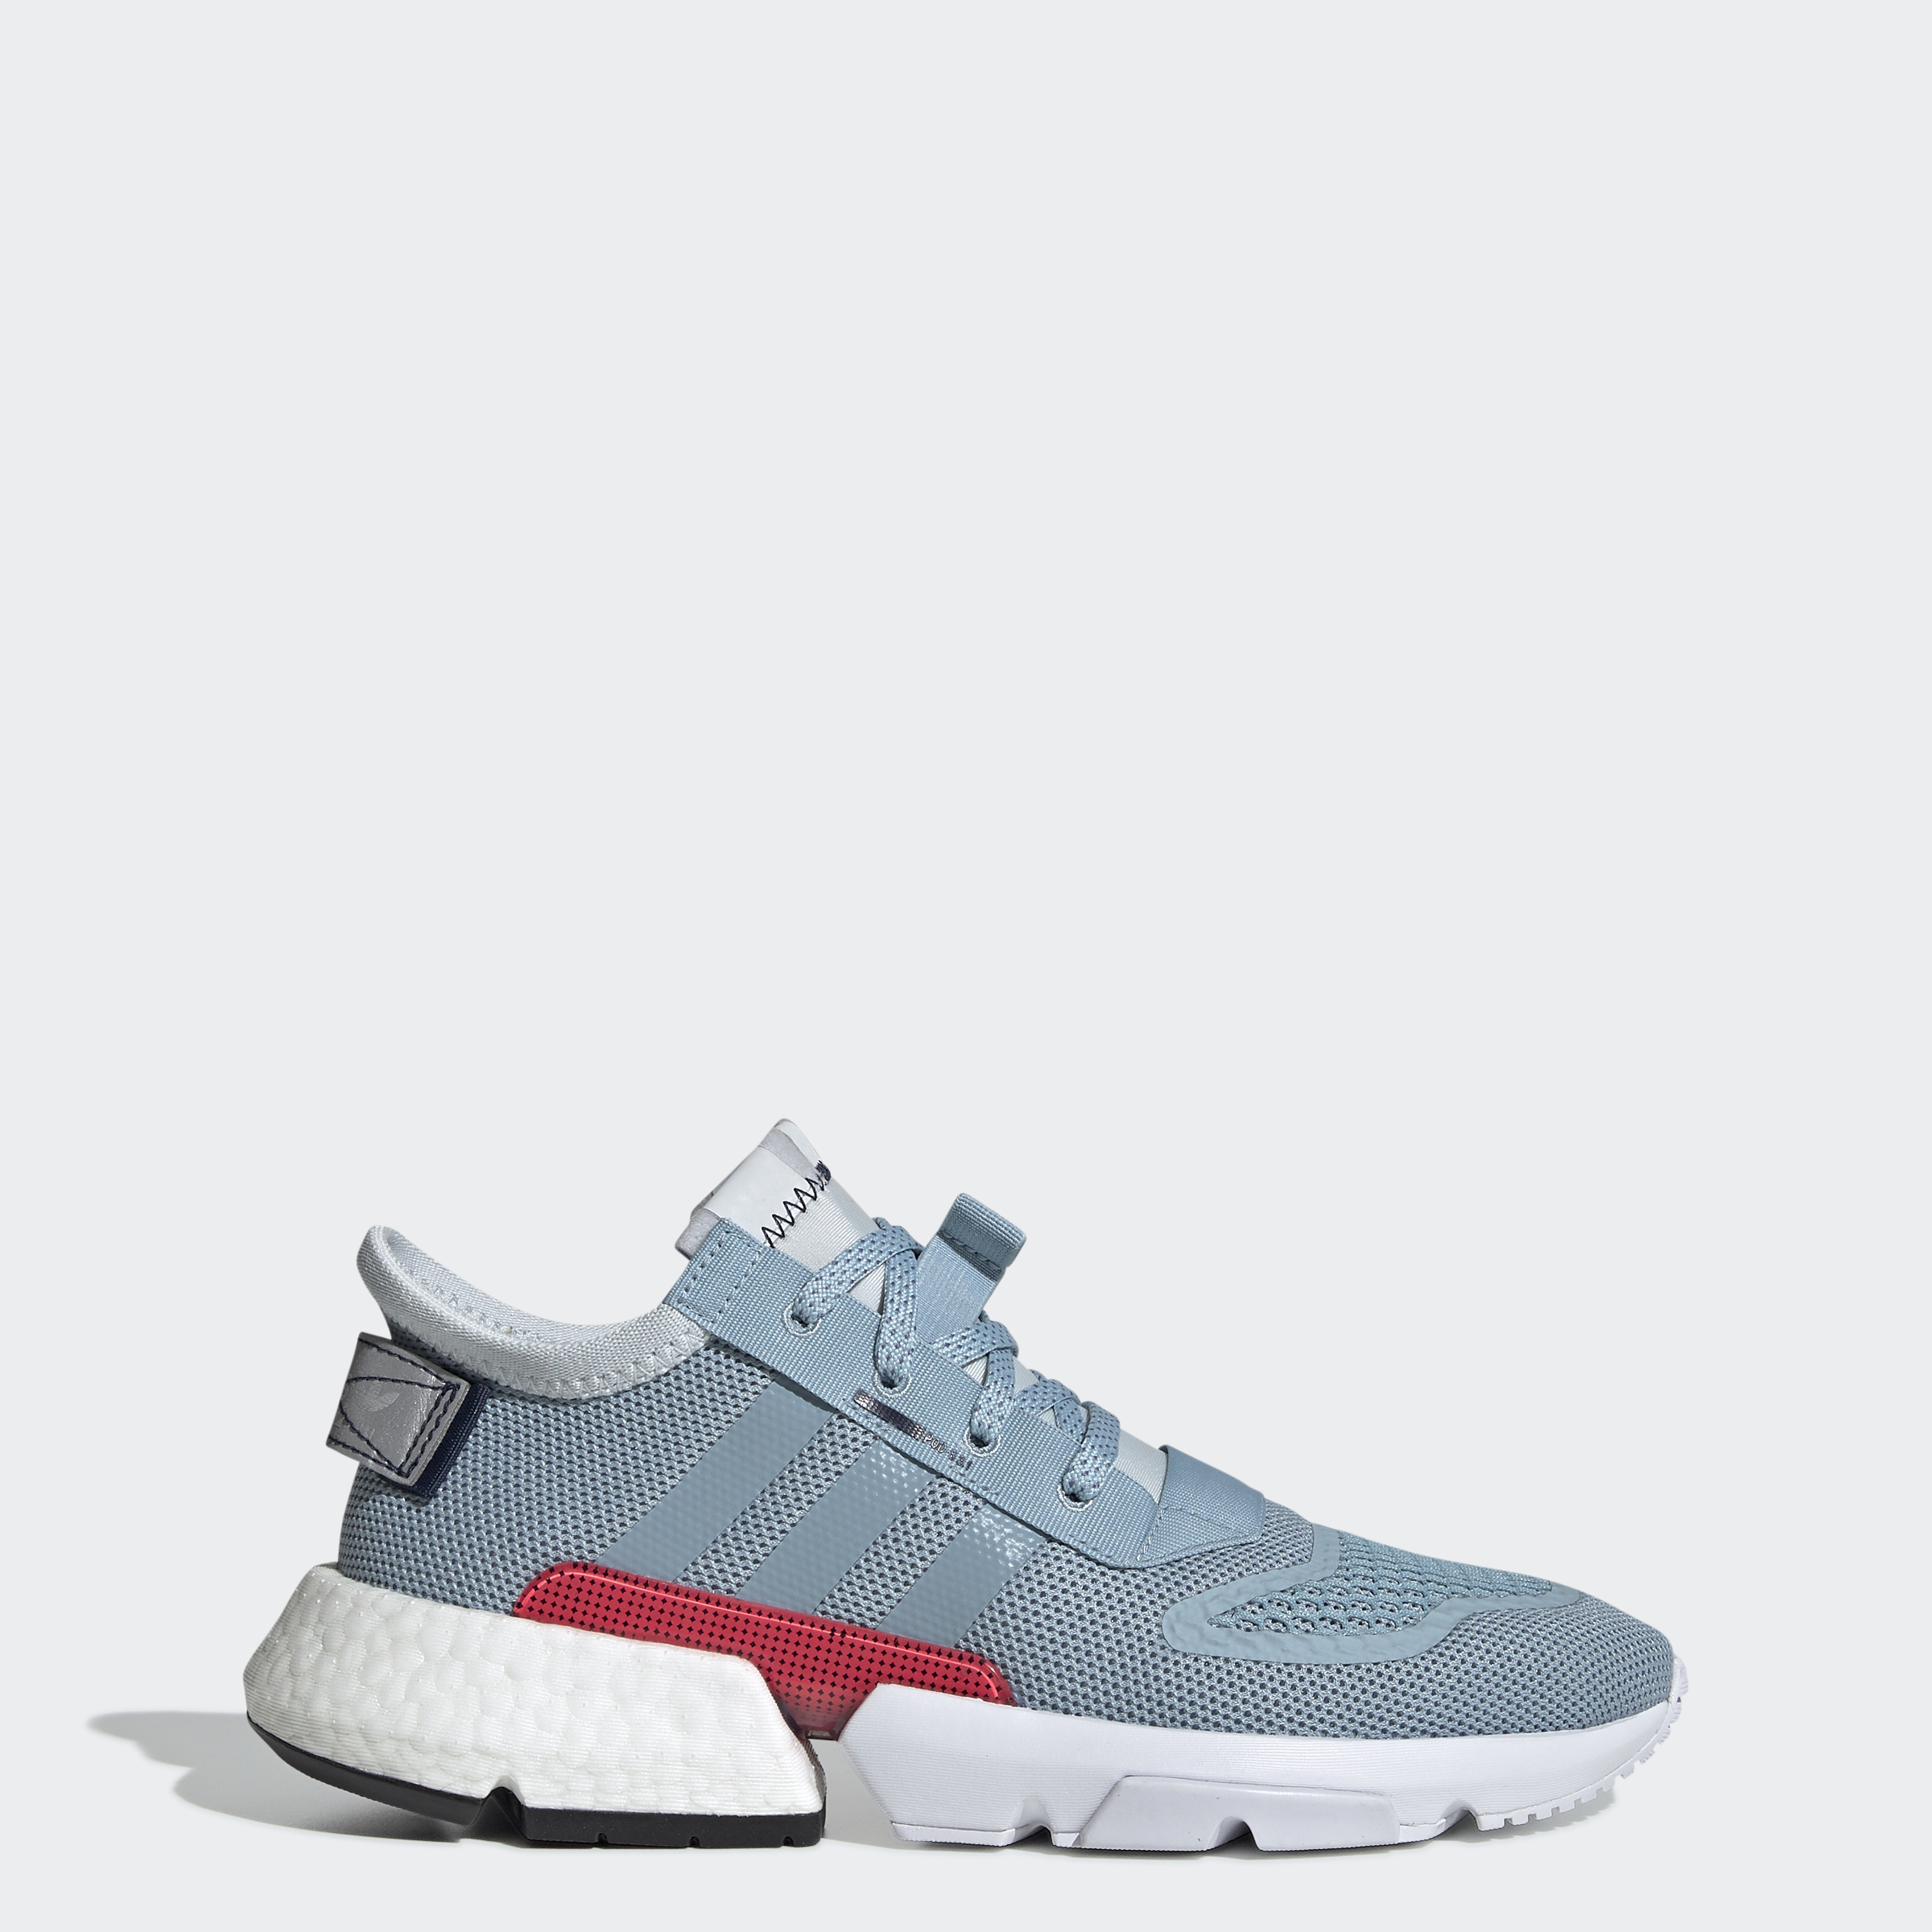 adidas-Originals-POD-S3-1-Shoes-Women-039-s thumbnail 34